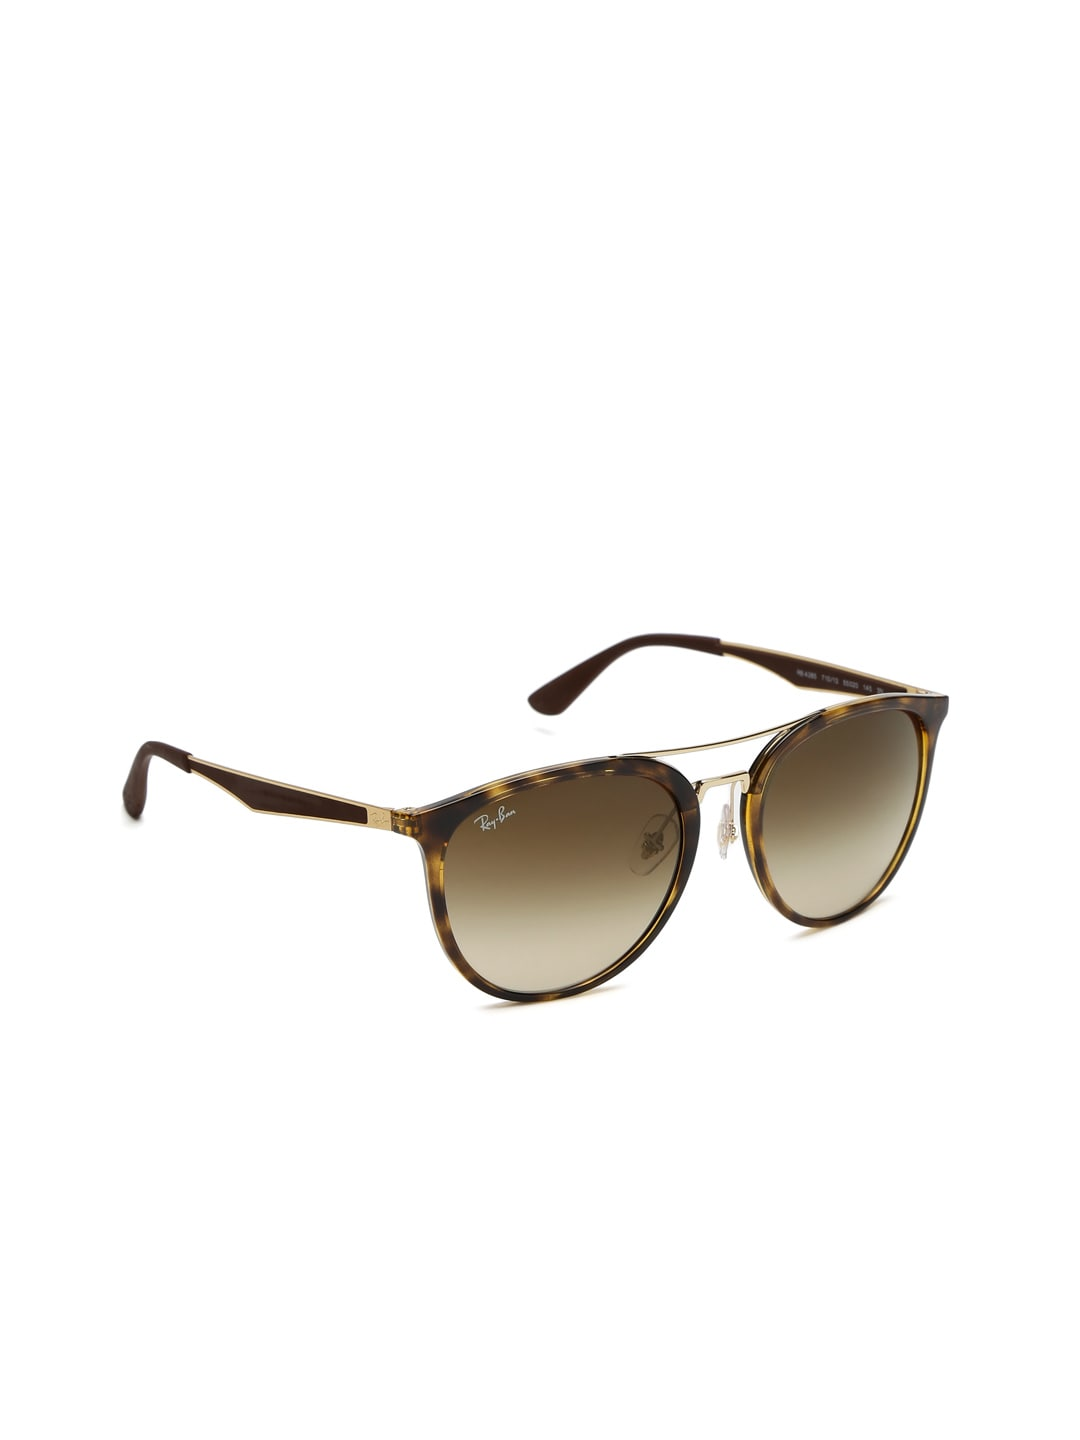 a3be6f5d8b Ray Ban - Buy Ray Ban Sunglasses   Frames Online In India